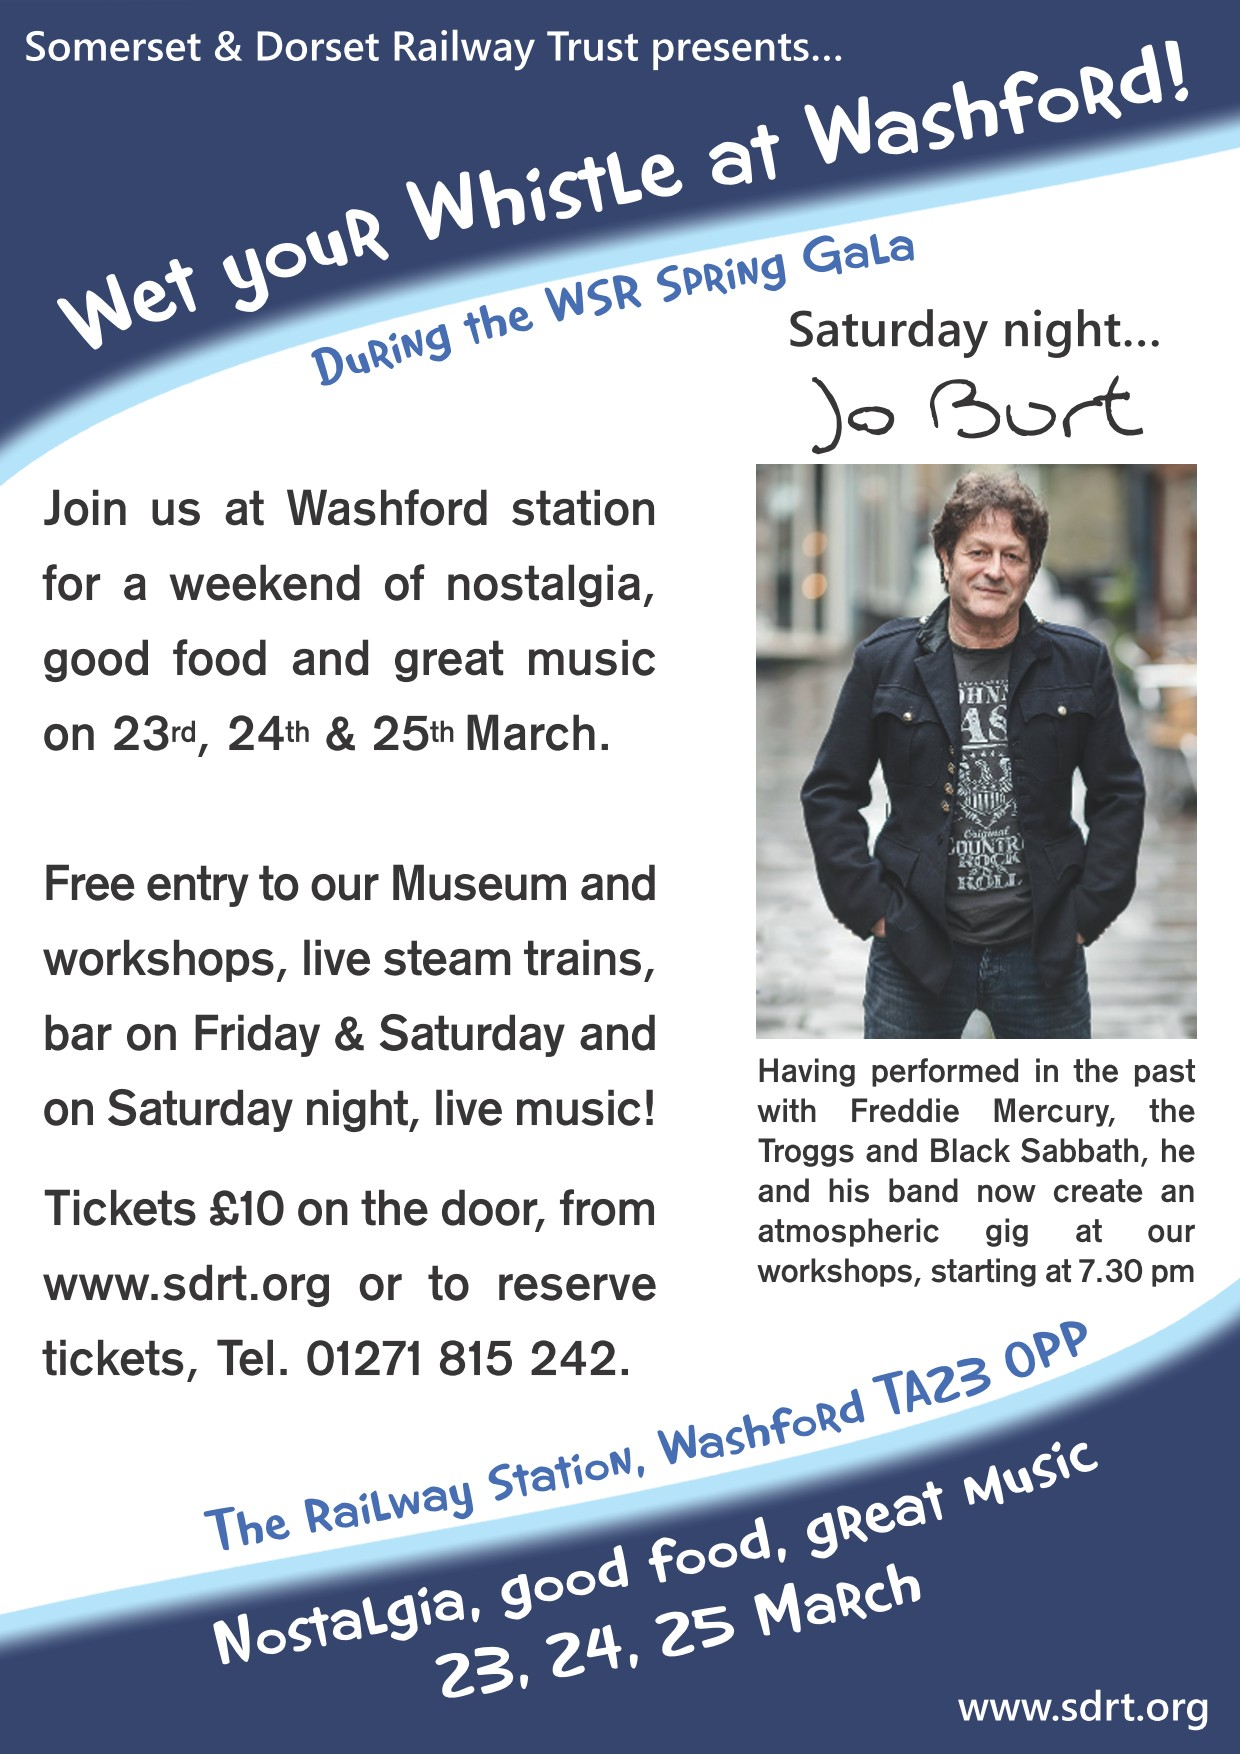 Wet your Whistle at Washford during the WSR Spring Gala!